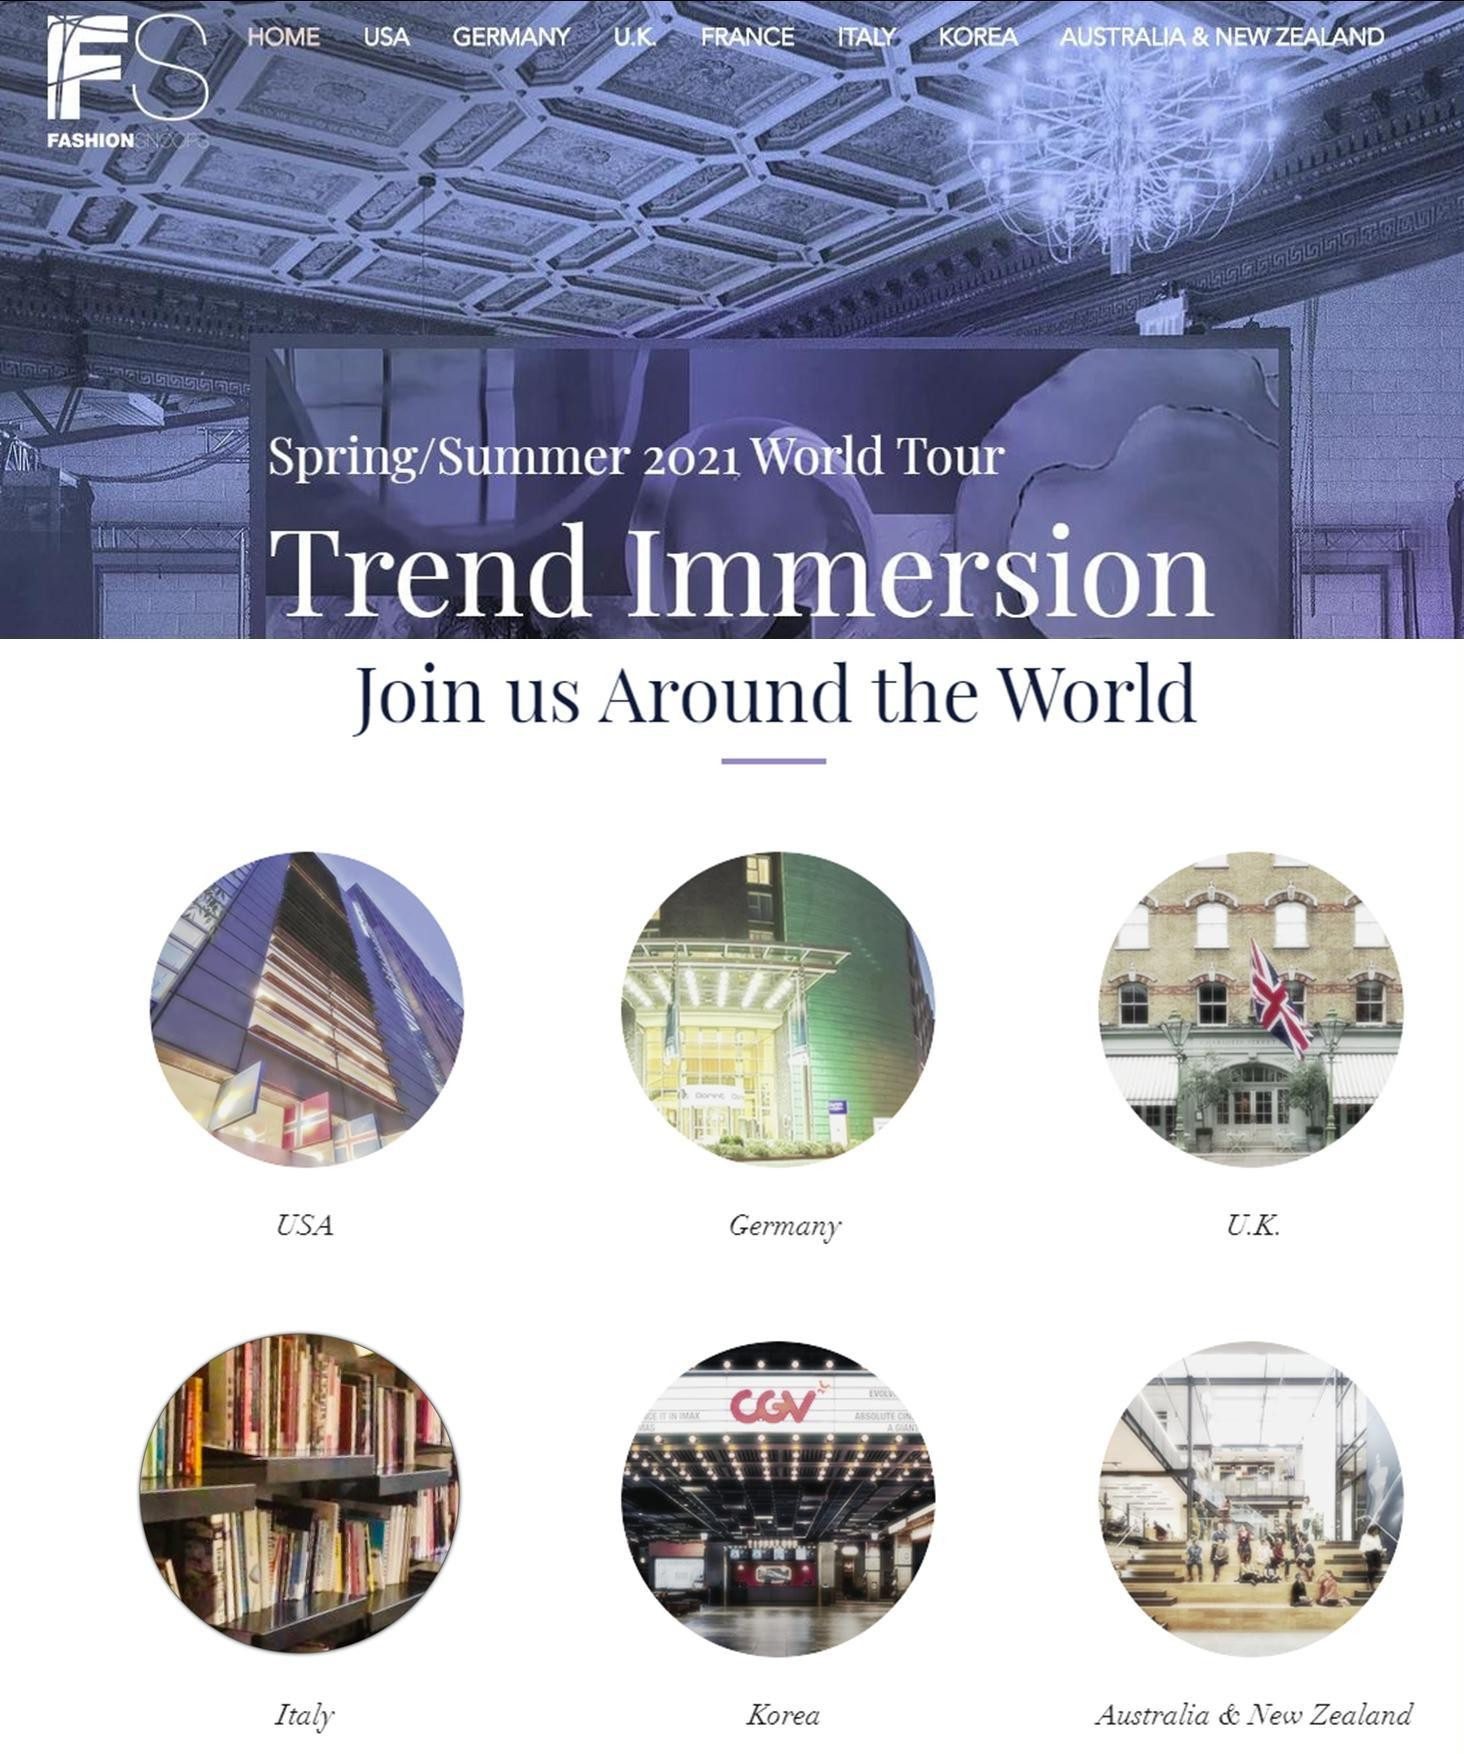 TREND IMMERSION DAY SPRING/SUMMER 2021 FASHIONSNOOPS WORLD TOUR